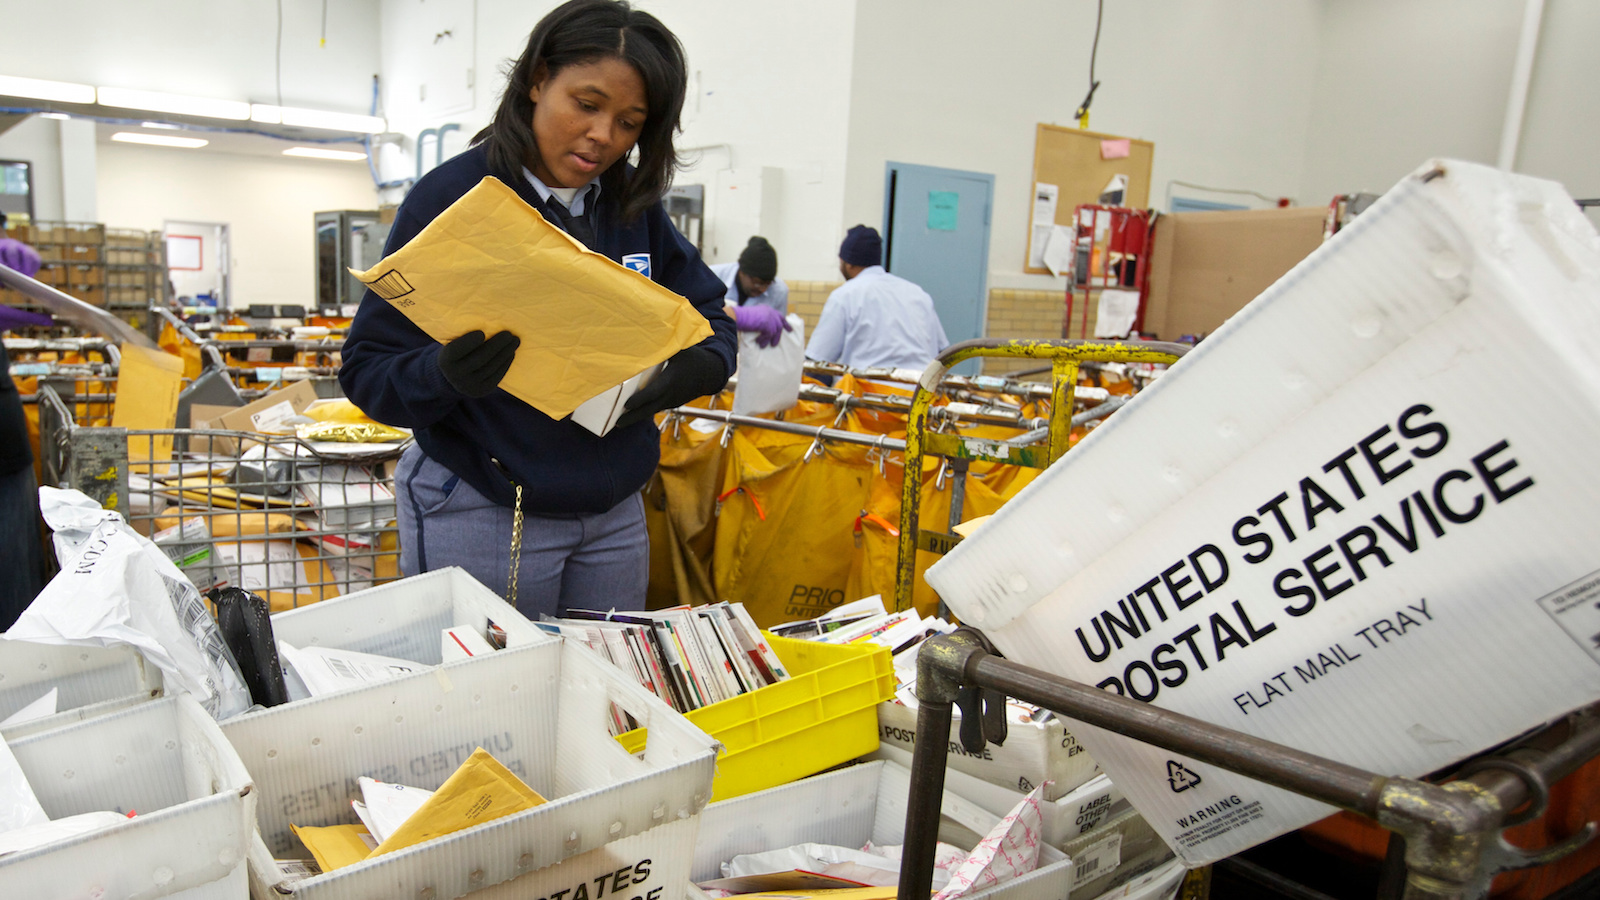 United States Postal Service (USPS) Letter Carrier Lakesha Dortch-Hardy sorts mail at the Lincoln Park carriers annex in Chicago, November 29, 2012. The USPS, which relies on the sale of stamps and other products rather than taxpayer dollars, has been grappling for years with high costs and tumbling mail volumes as consumers communicate more online.